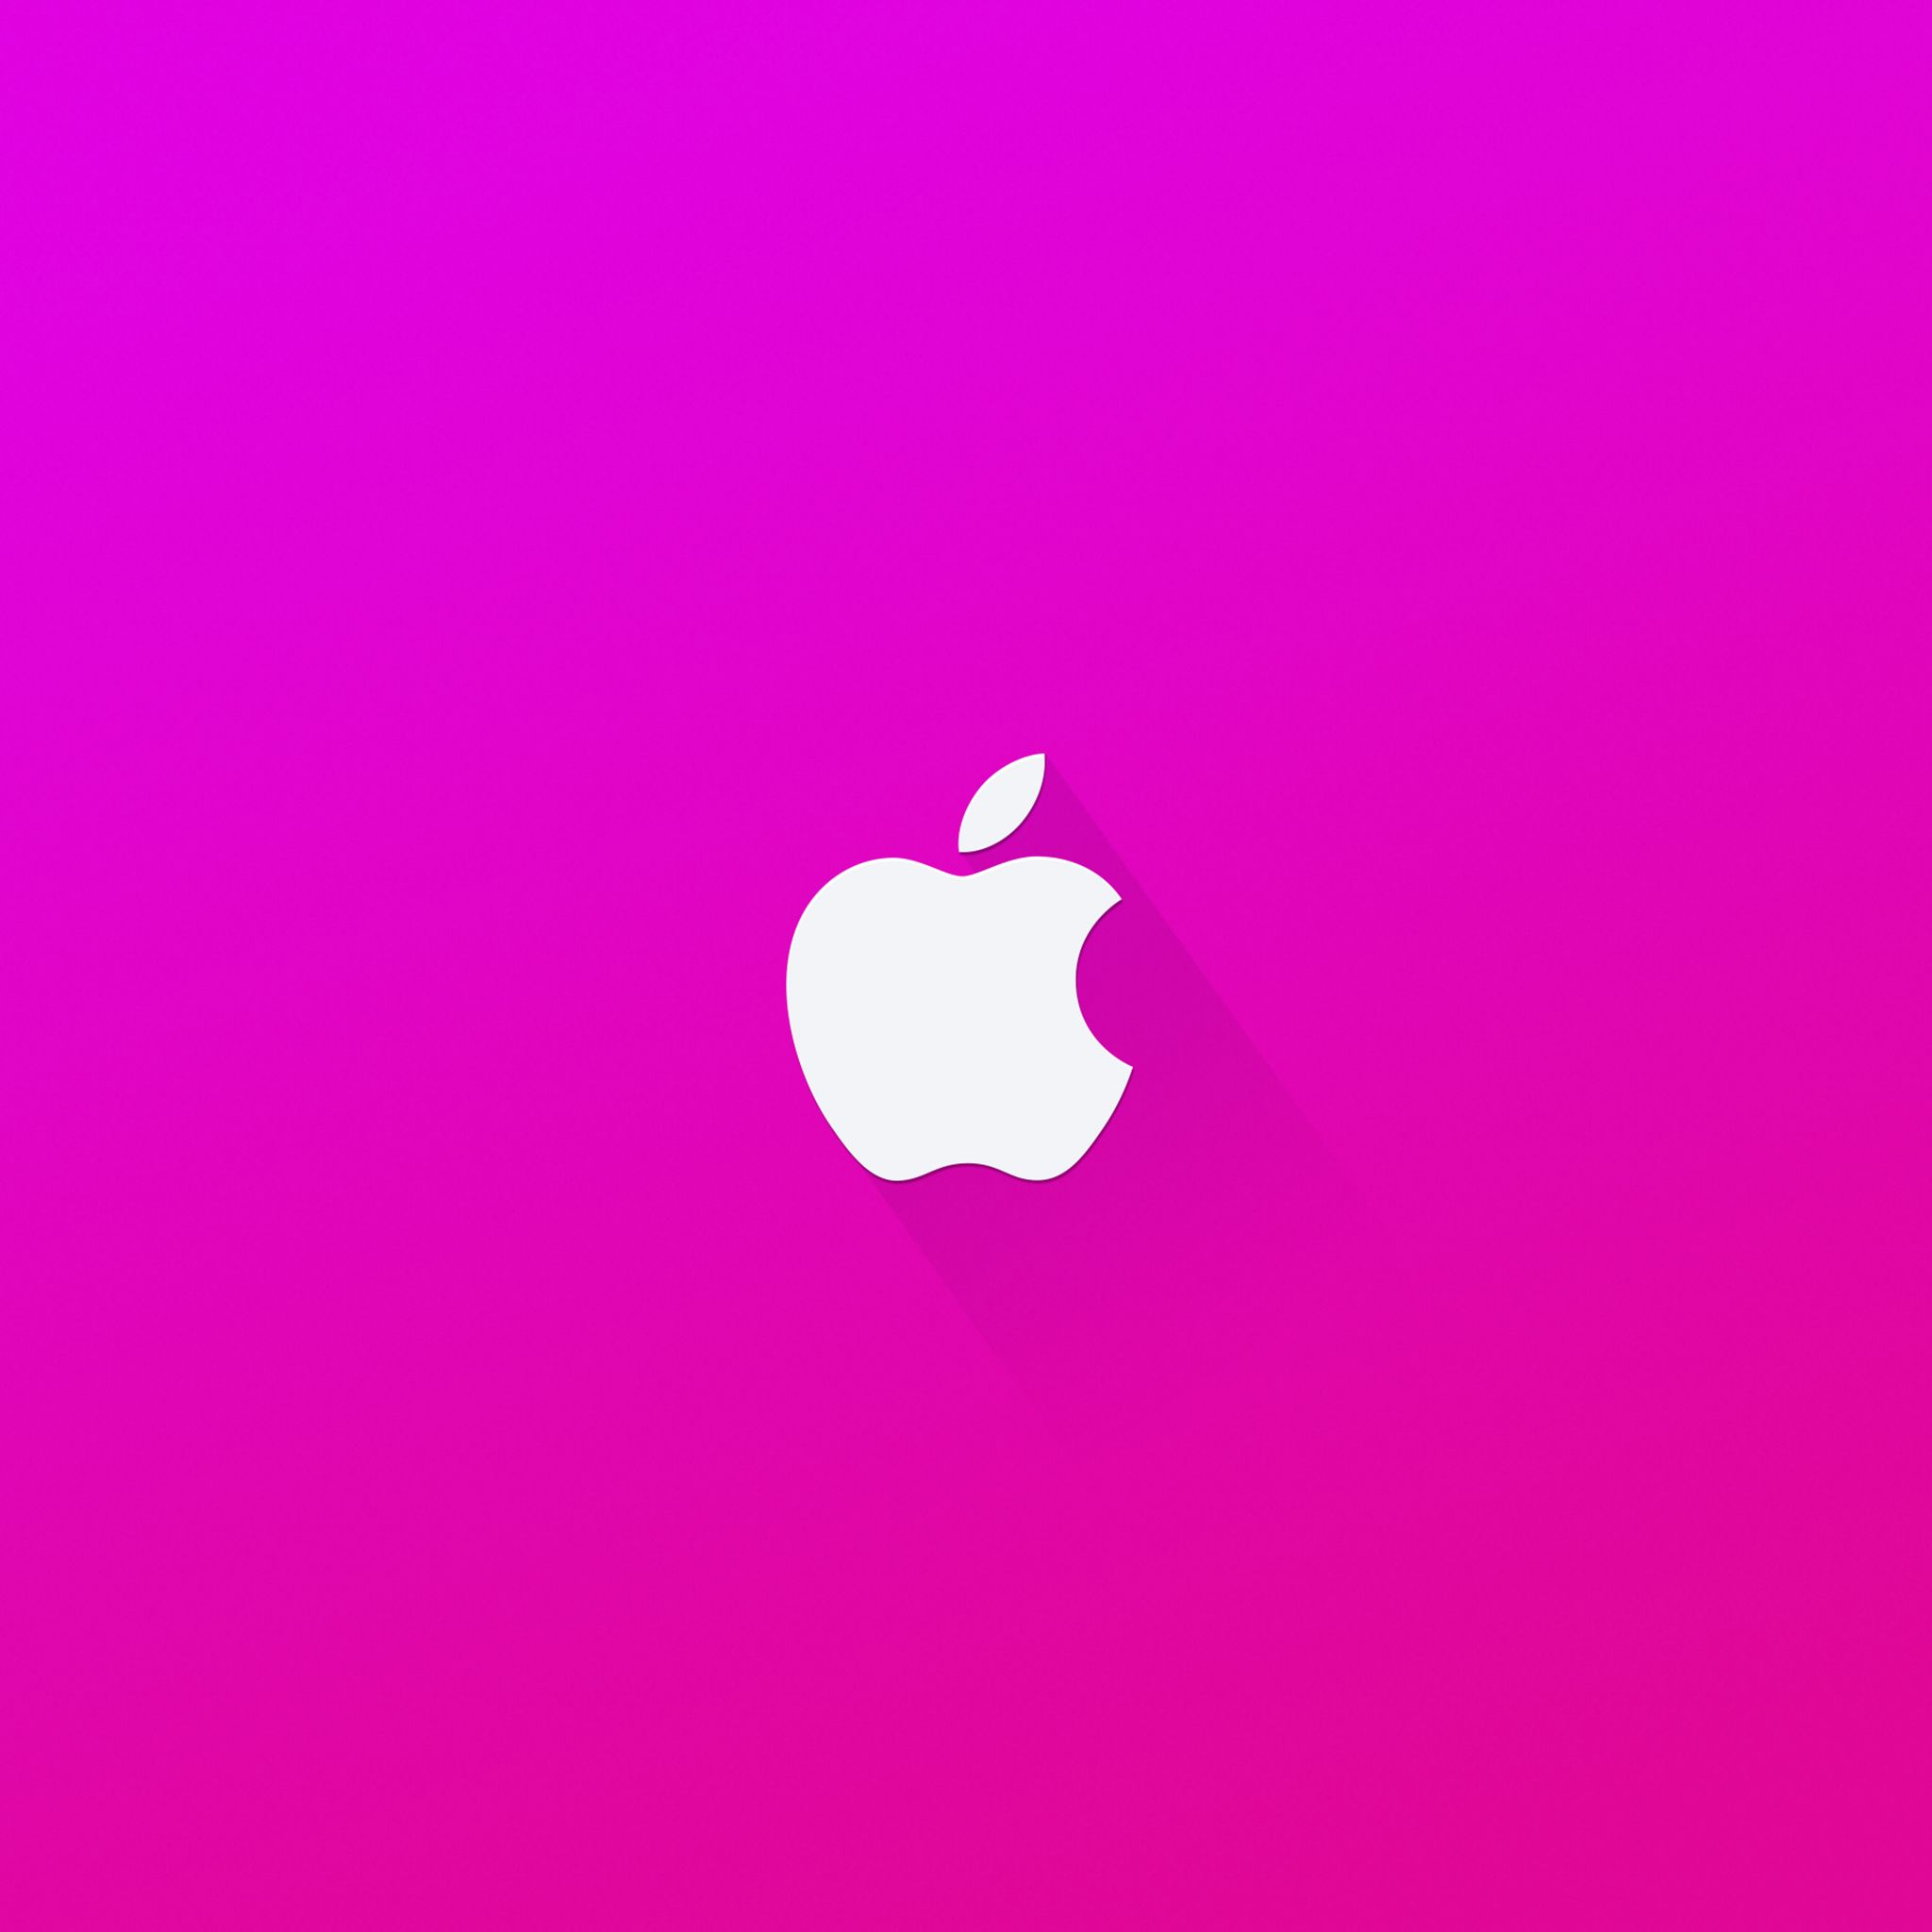 Best Wallpaper Macbook Pink - 19c4ac289b11a04a3dac46e6f7bf63f0  Perfect Image Reference_74421.jpg